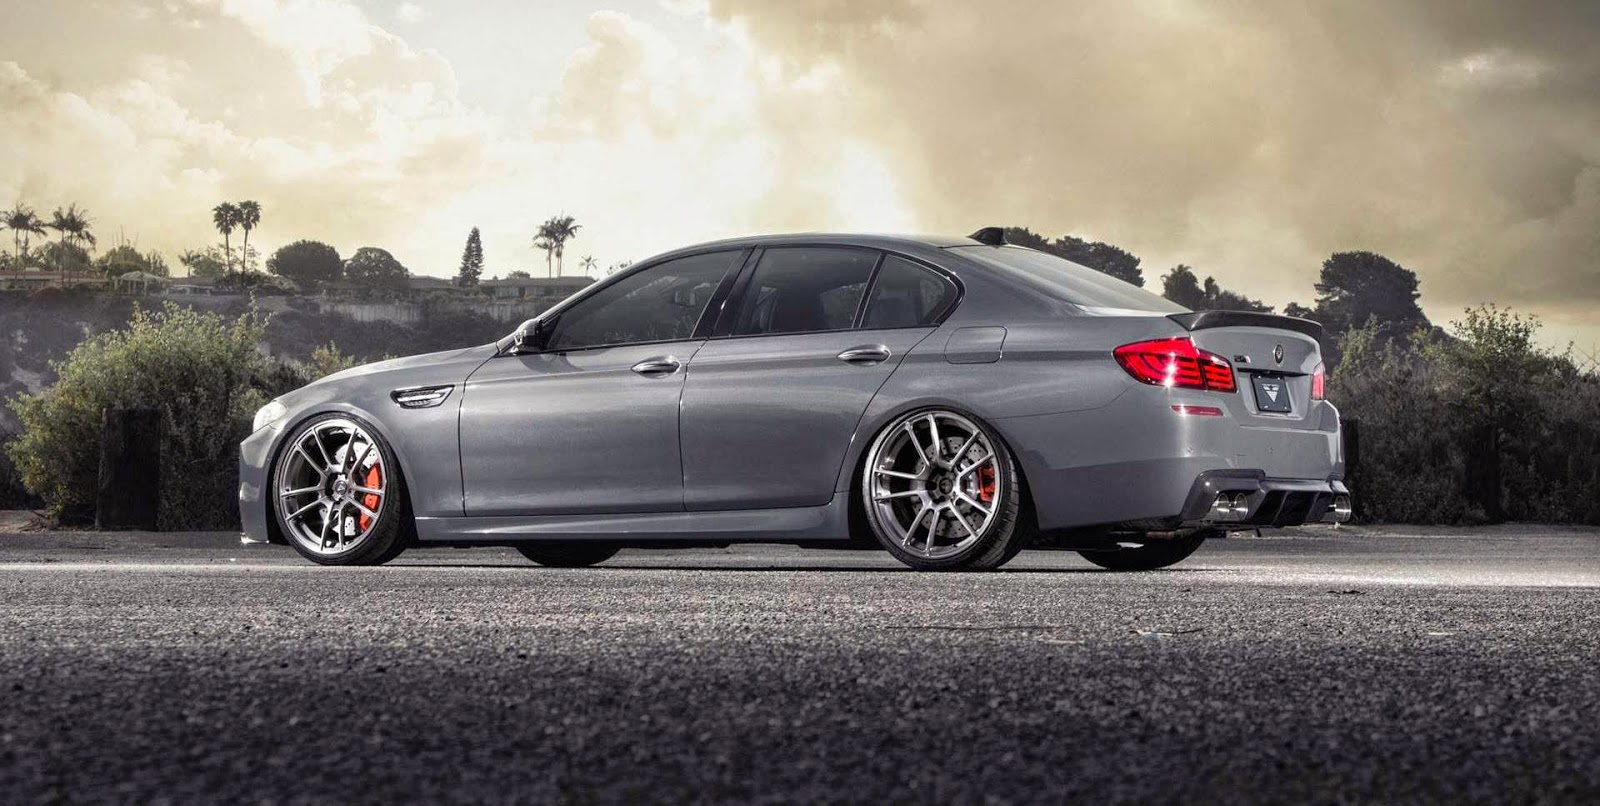 Cool pictures of car 2014 BMW M5 Wallpaper